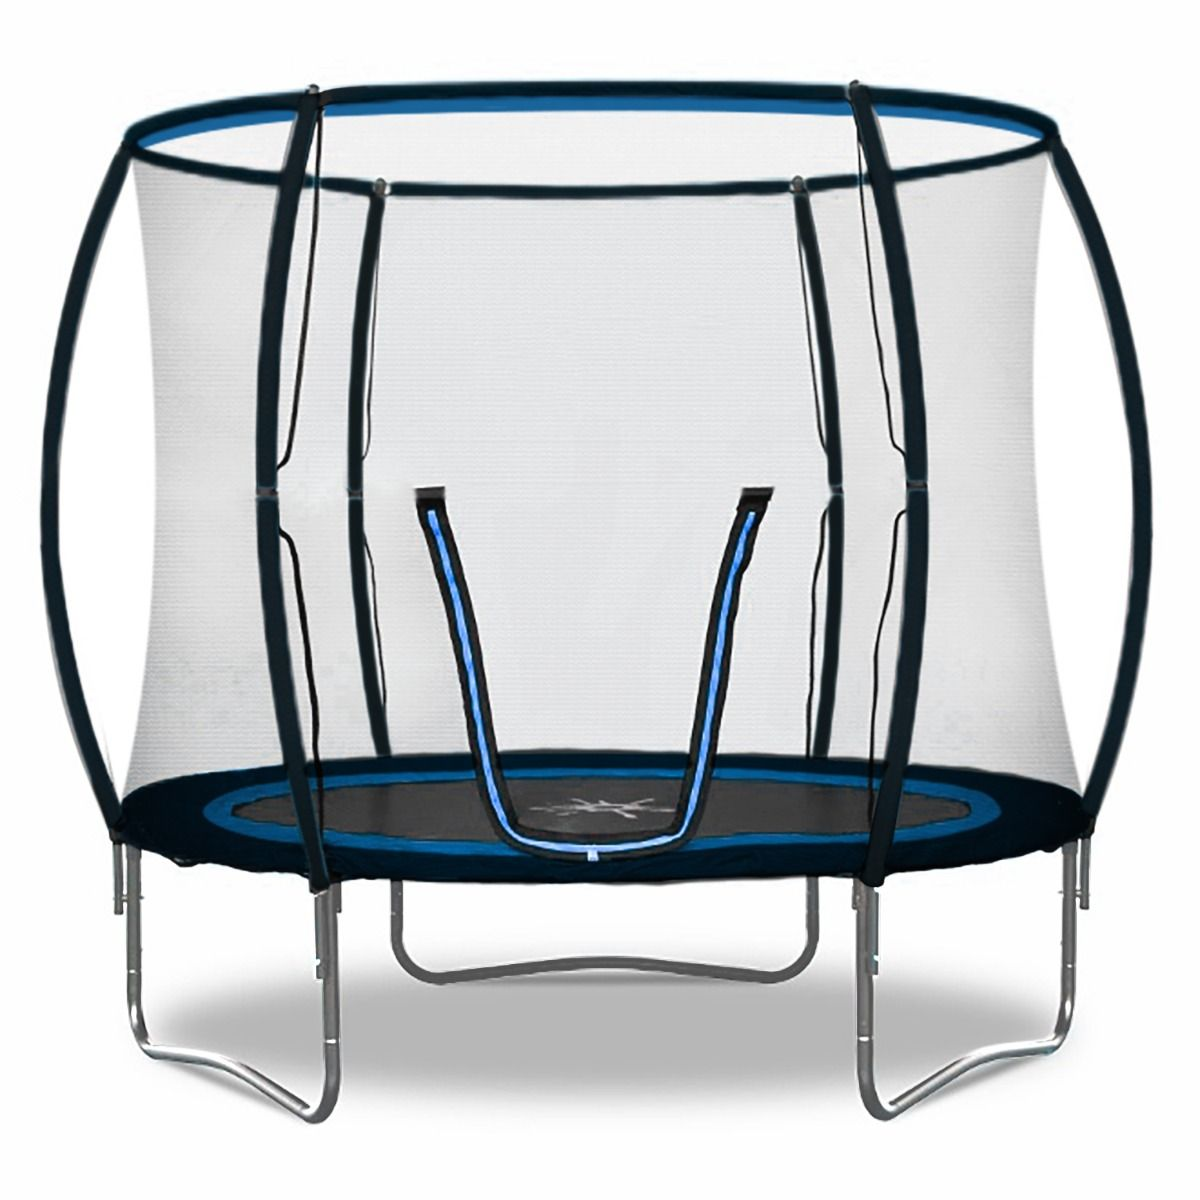 Rebo 8FT Jump Zone II Trampoline with Halo Safety Enclosure 2020 Model